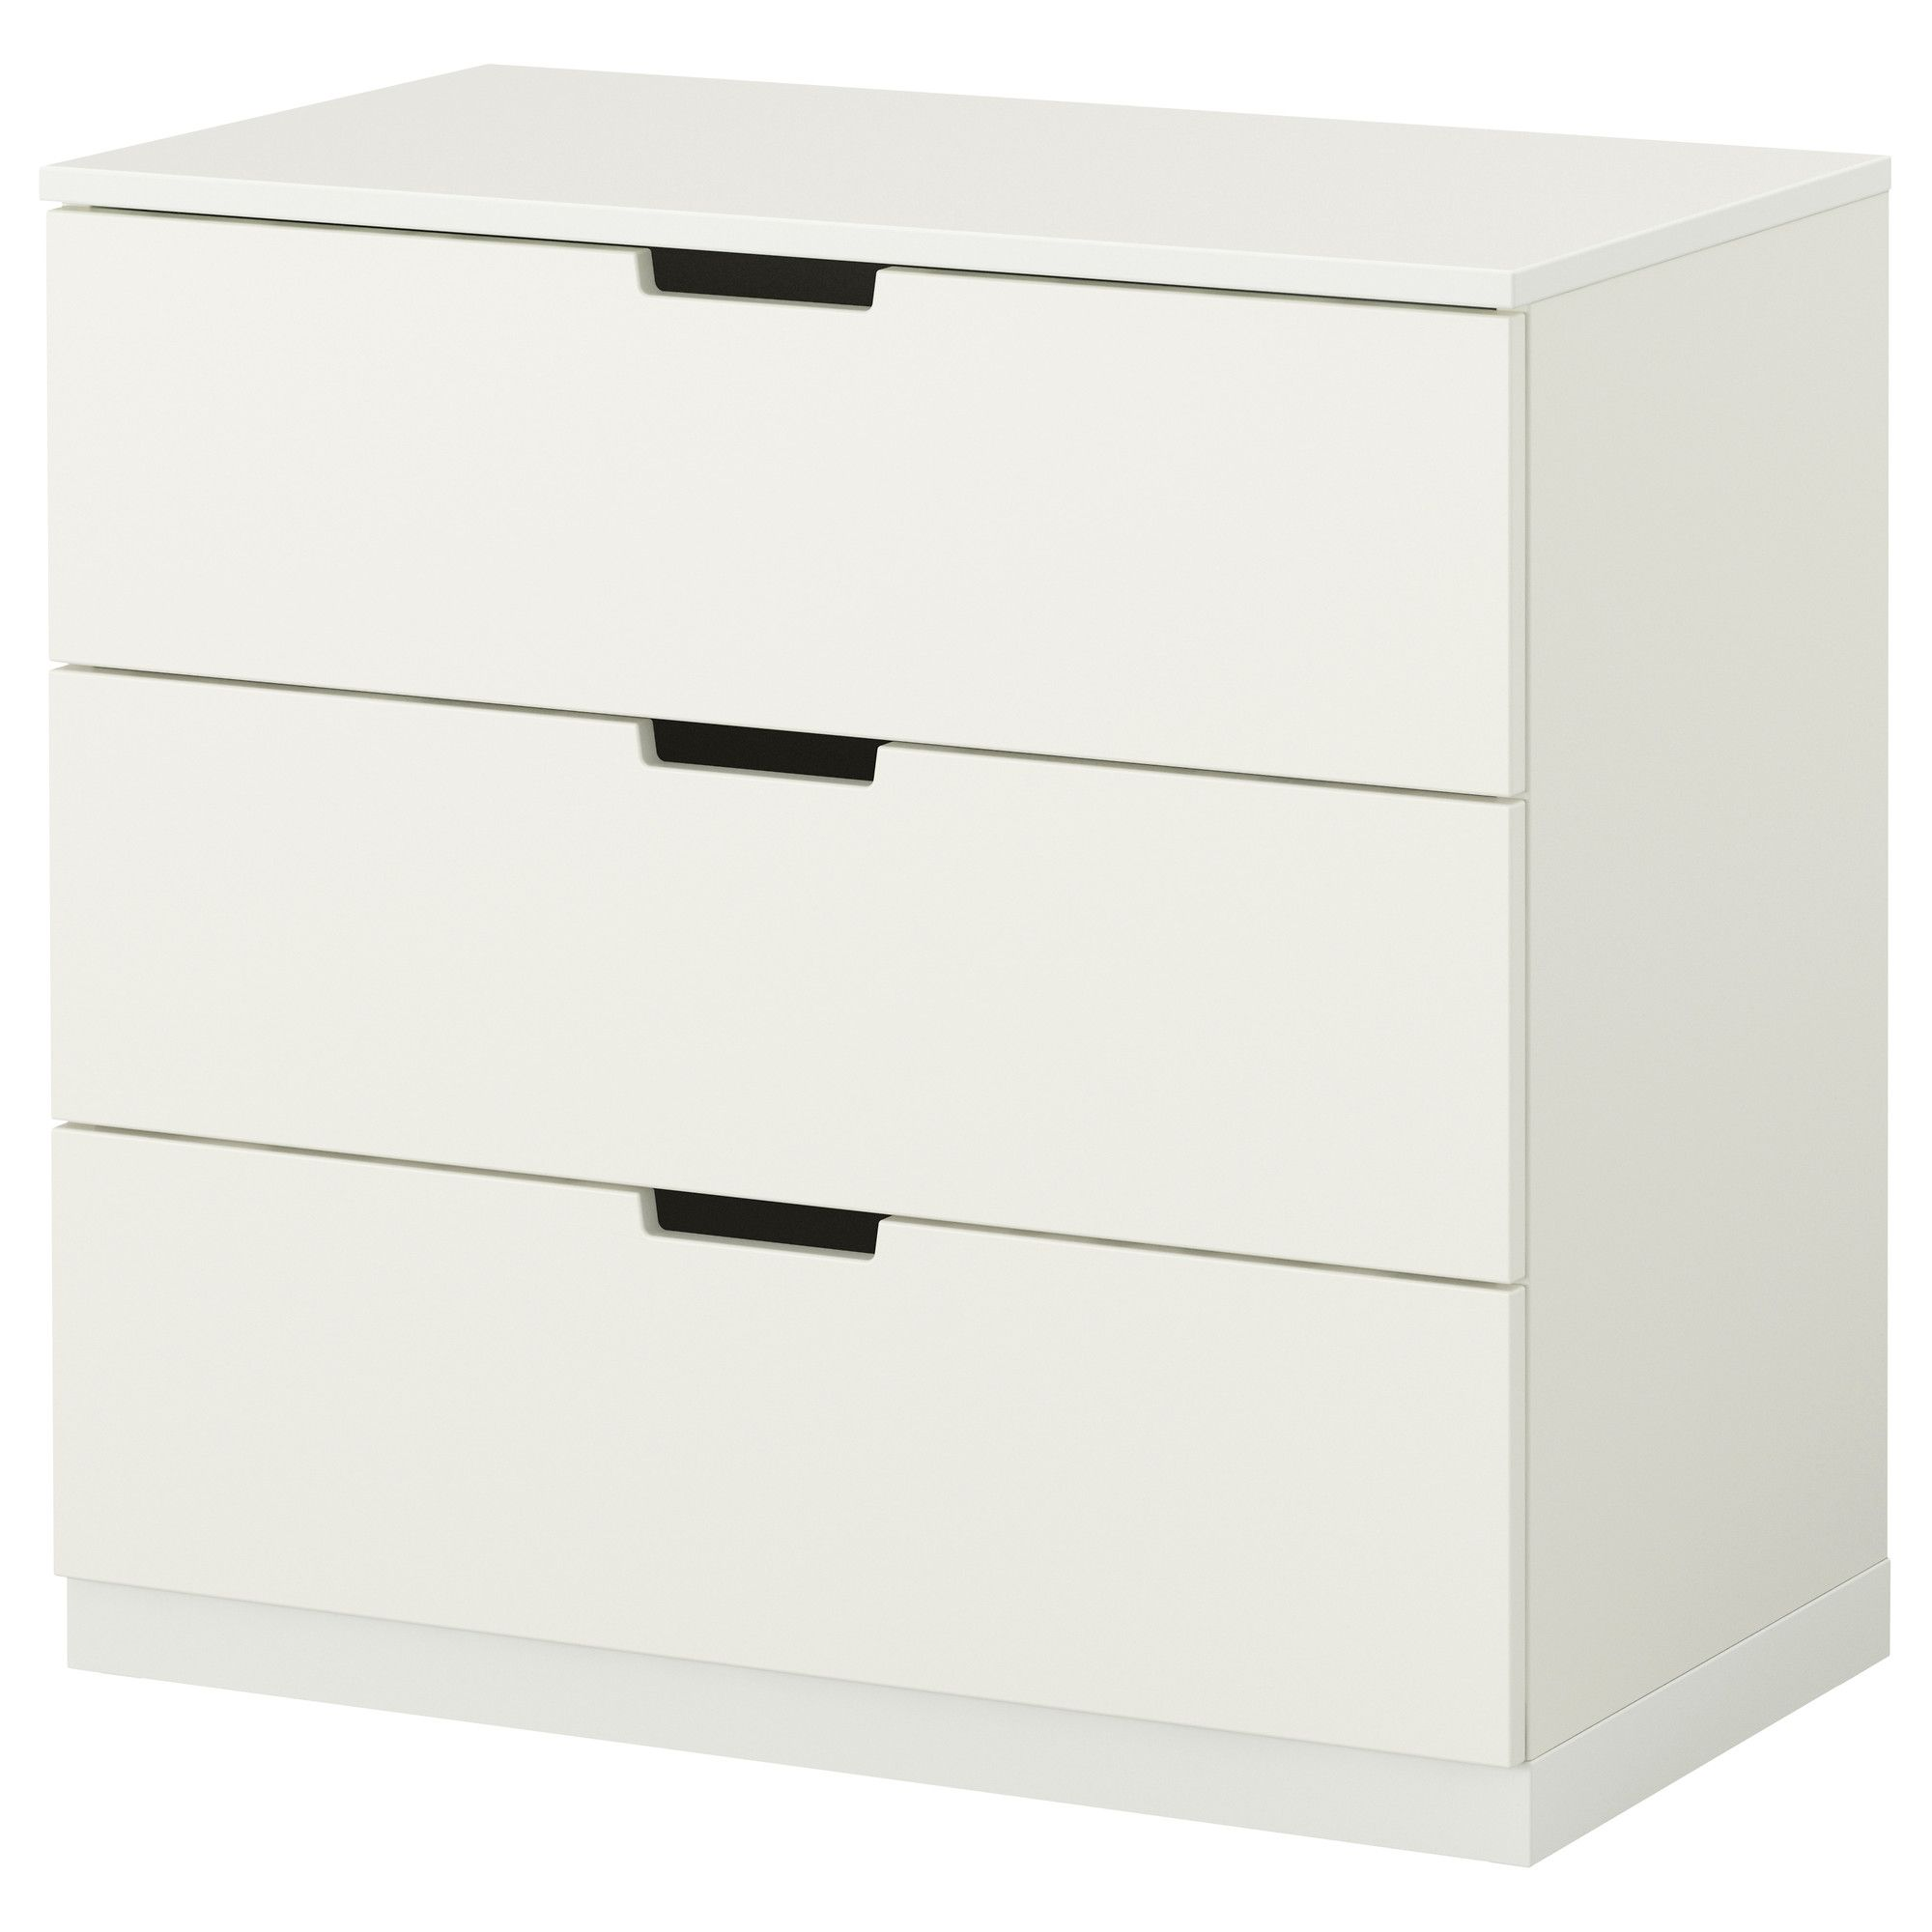 Kommode weiß ikea  NORDLI Ladekast 3 lades, wit | Drawers, Girls room storage and Desks